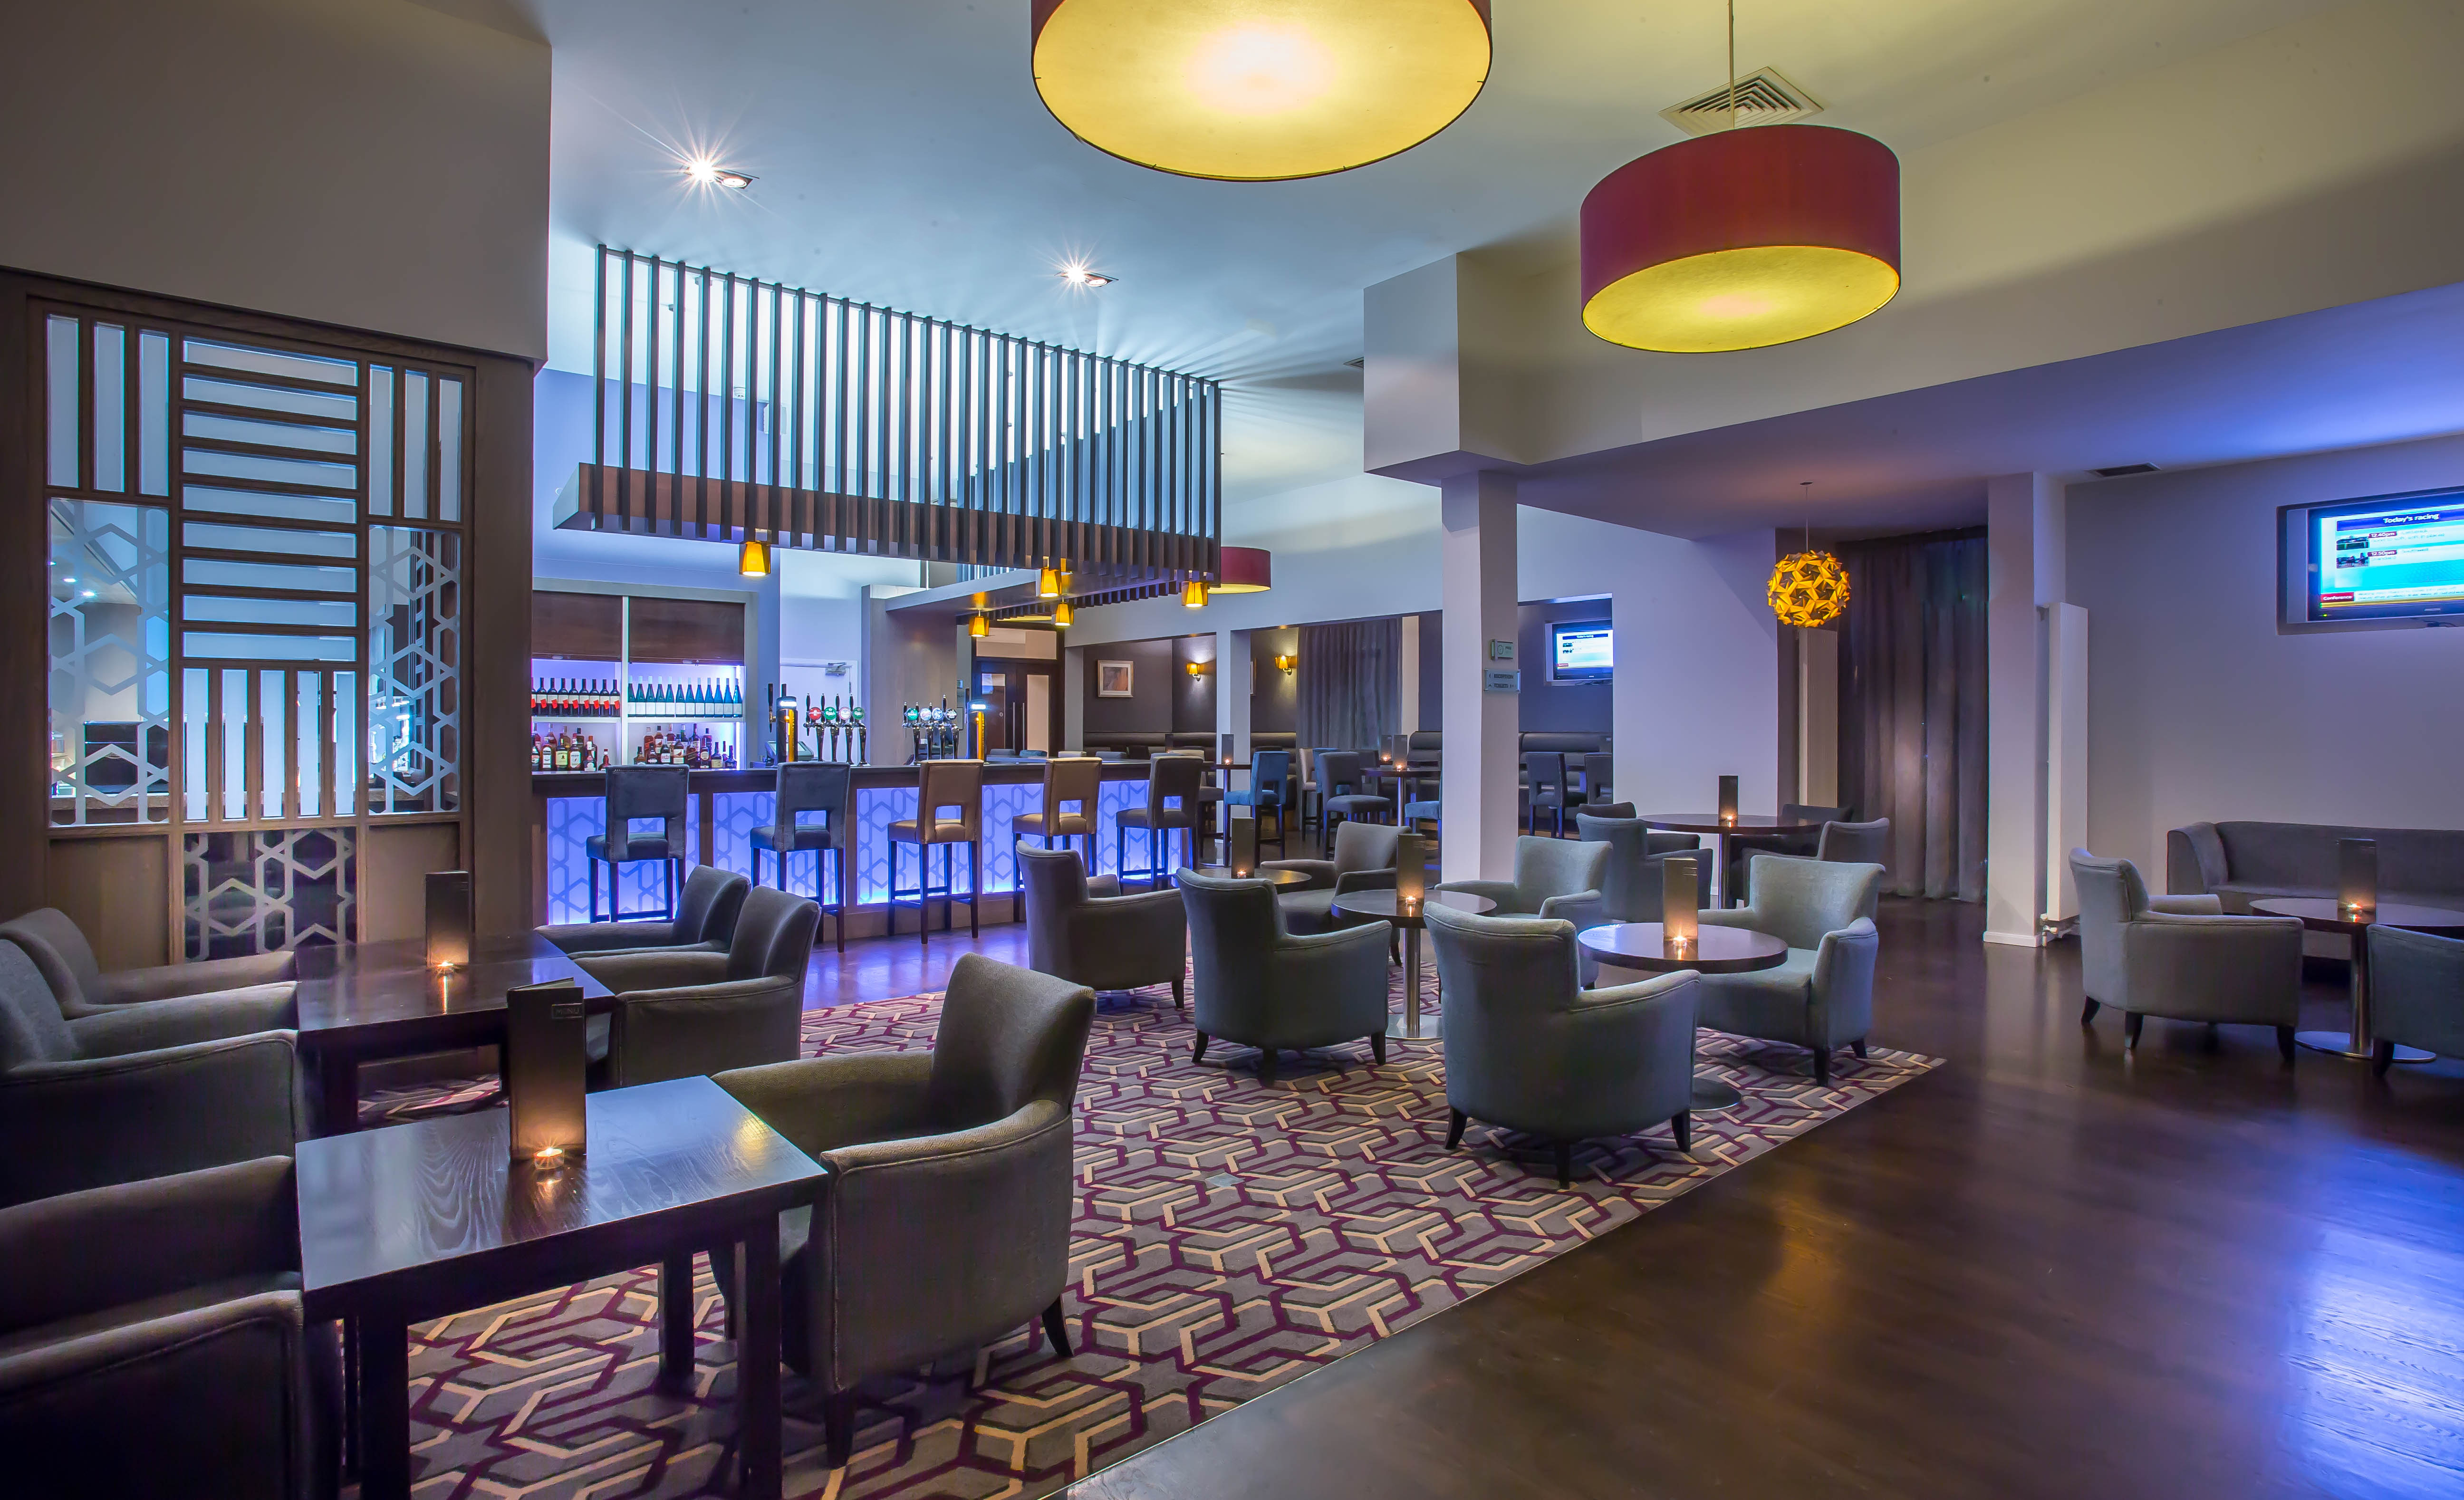 Maldron Hotel Dublin Airport Lobby Preparing Tail In Sky Bar At